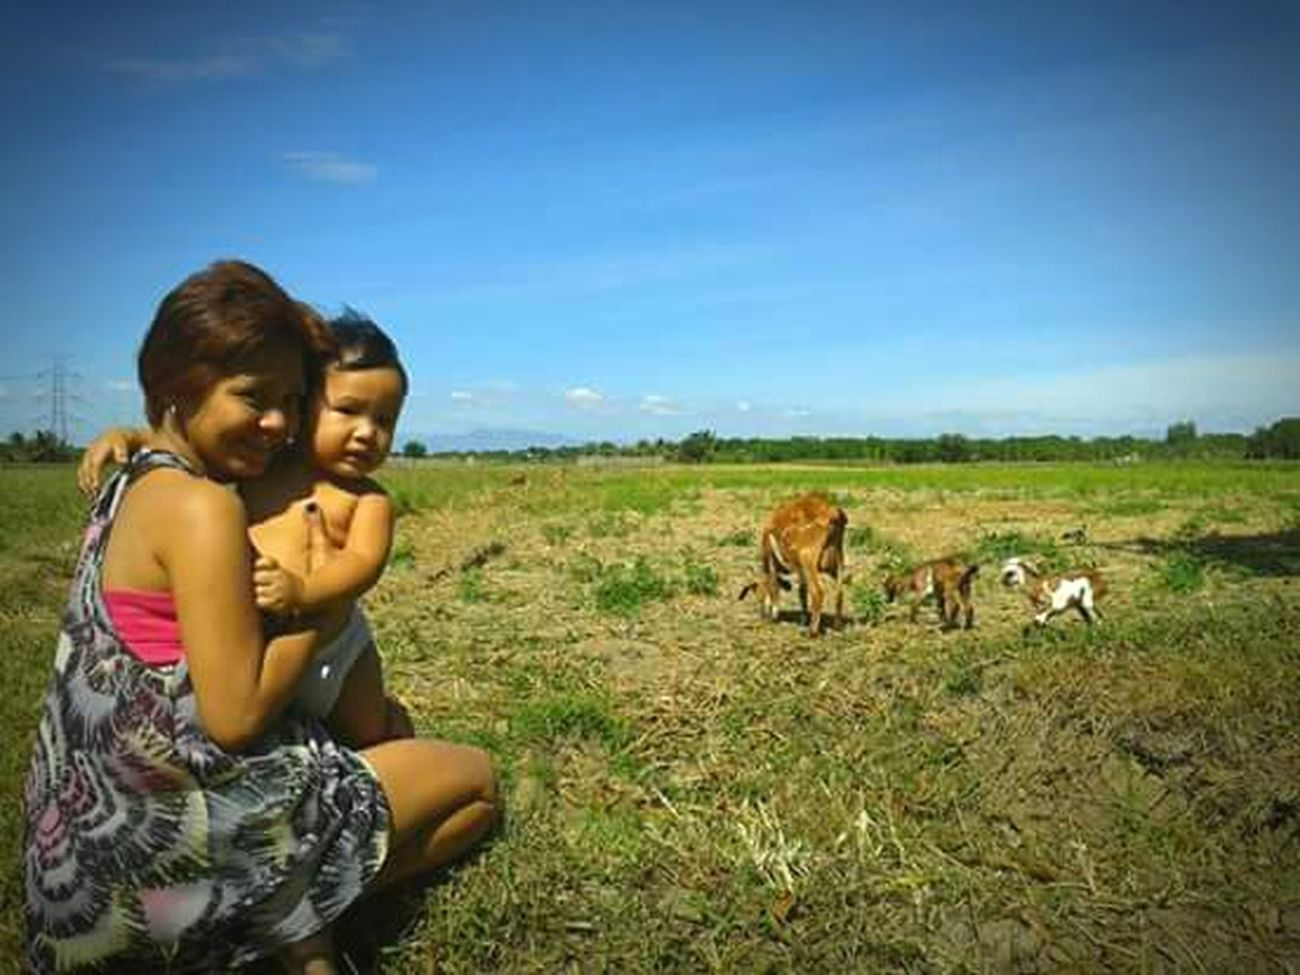 RePicture Motherhood Summer Views Nanay Buhawiandnanay Buhawi Sunnyphilippines Farmlife Simplehappiness Love Babylove